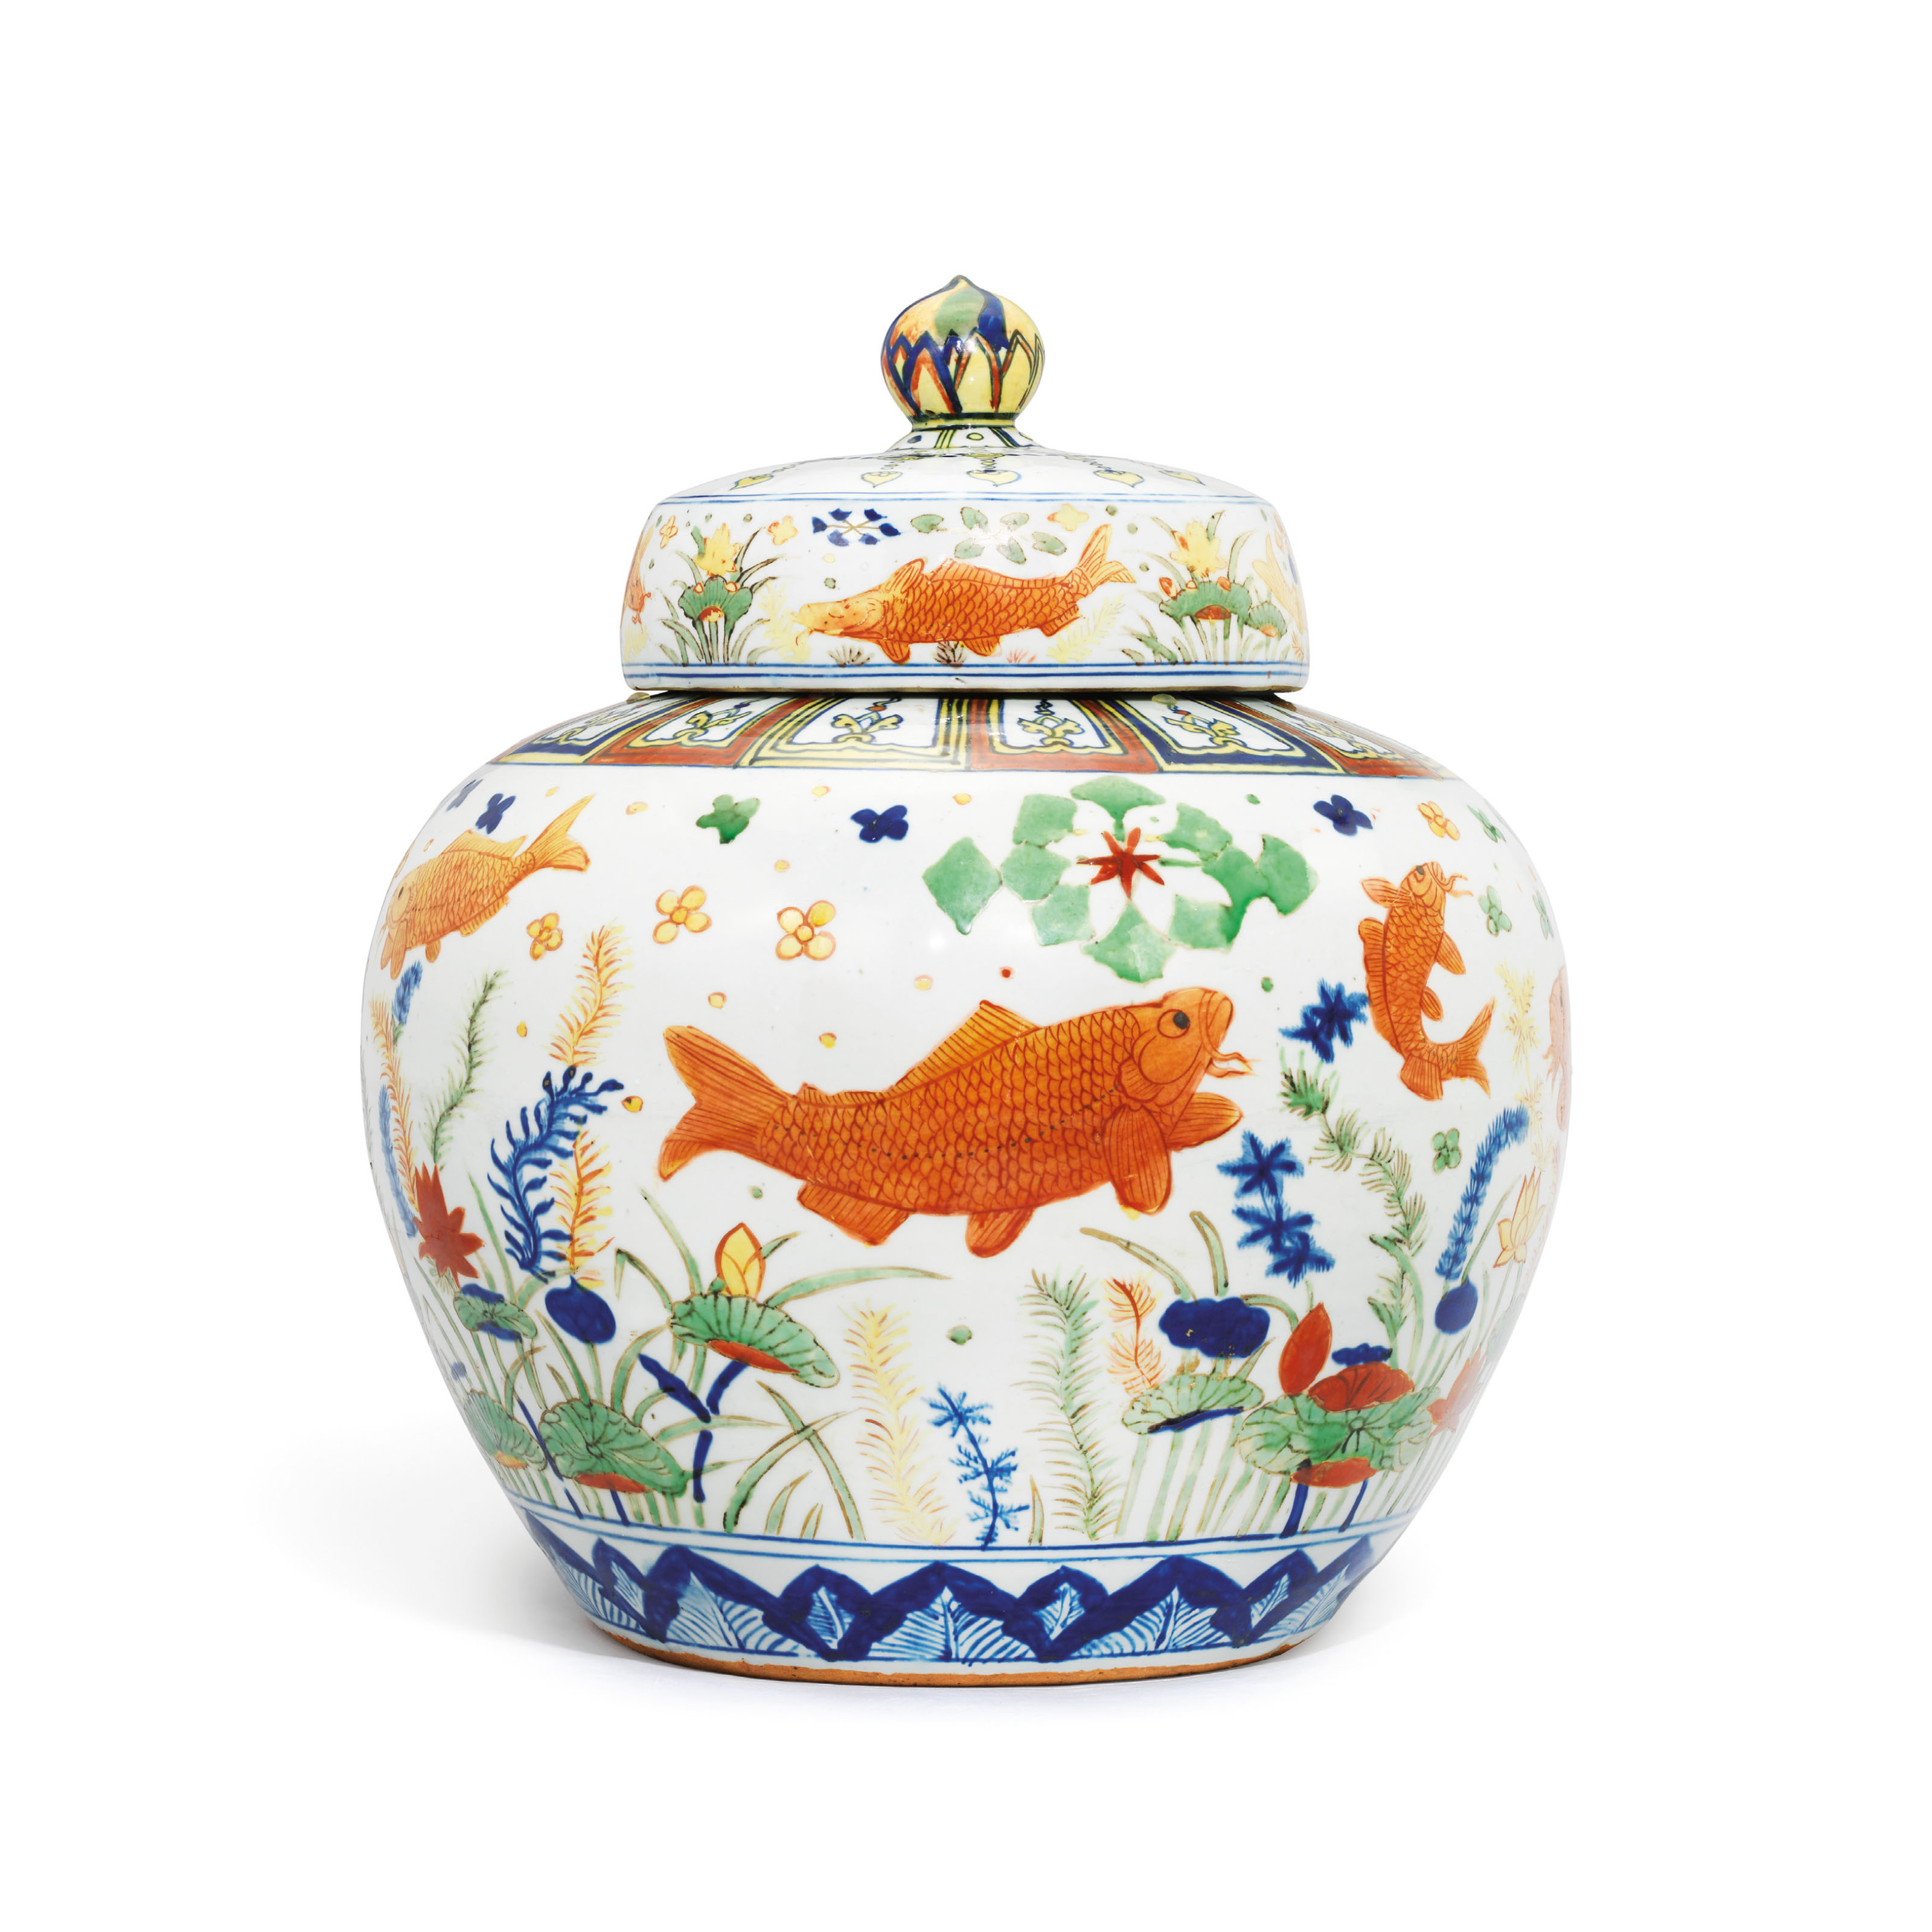 Collecting guide ming era art christies a highly important and extremely rare wucai fish jar and cover jiajing six character mark in underglaze blue and of the period 1522 1566 reviewsmspy